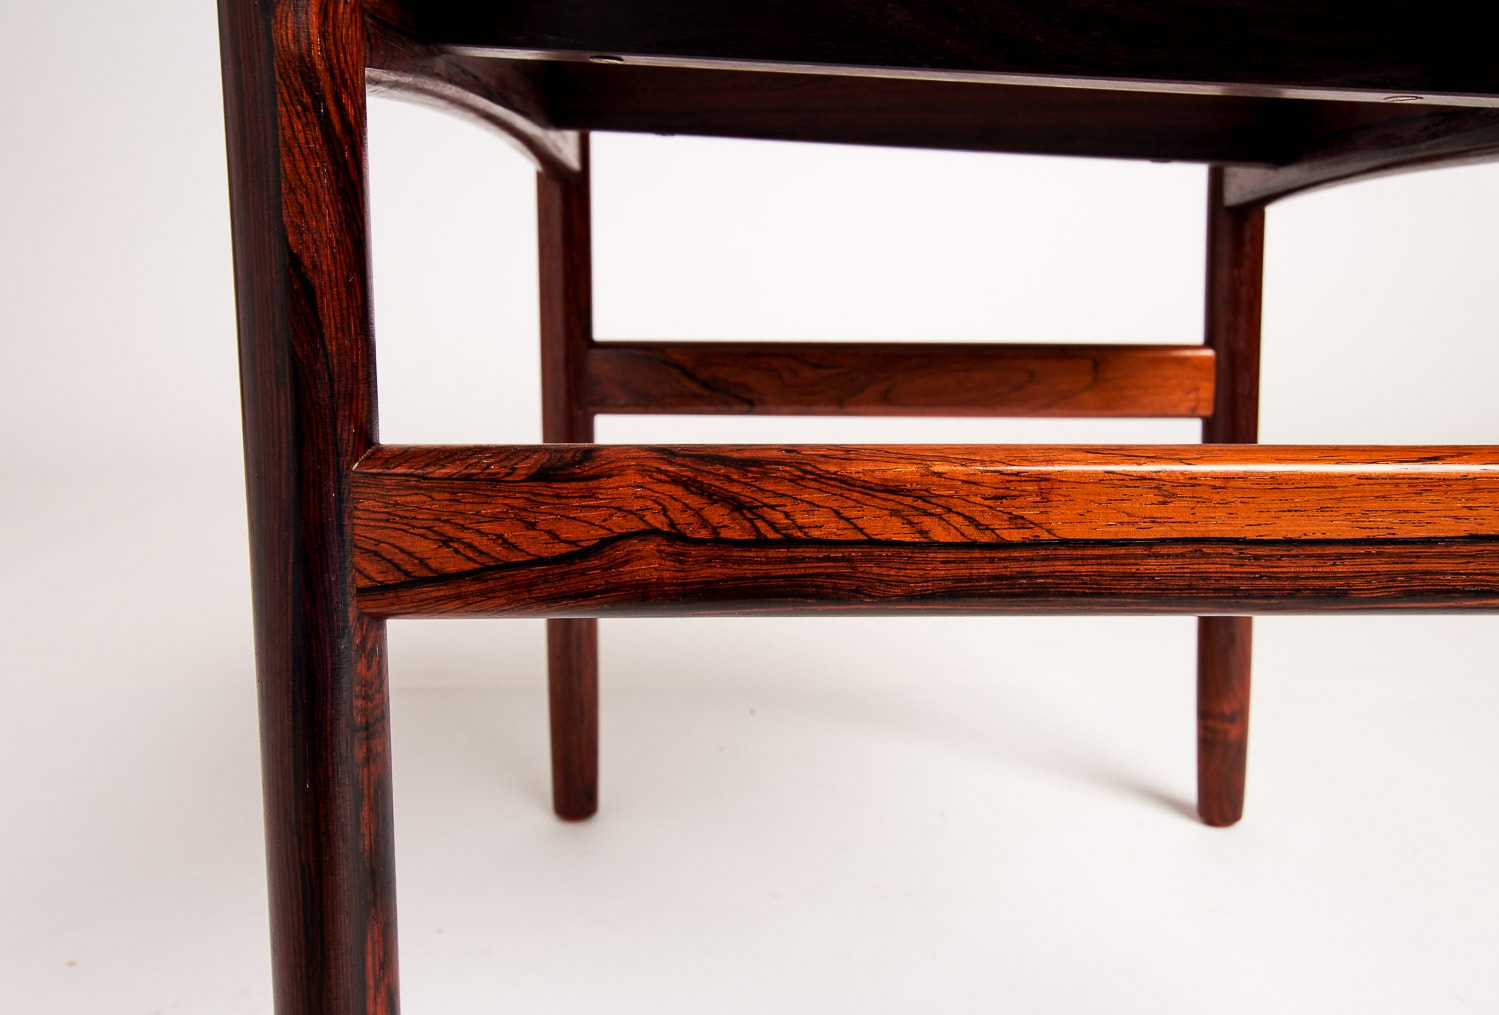 Rosewood dining chair vintage retro furniture London